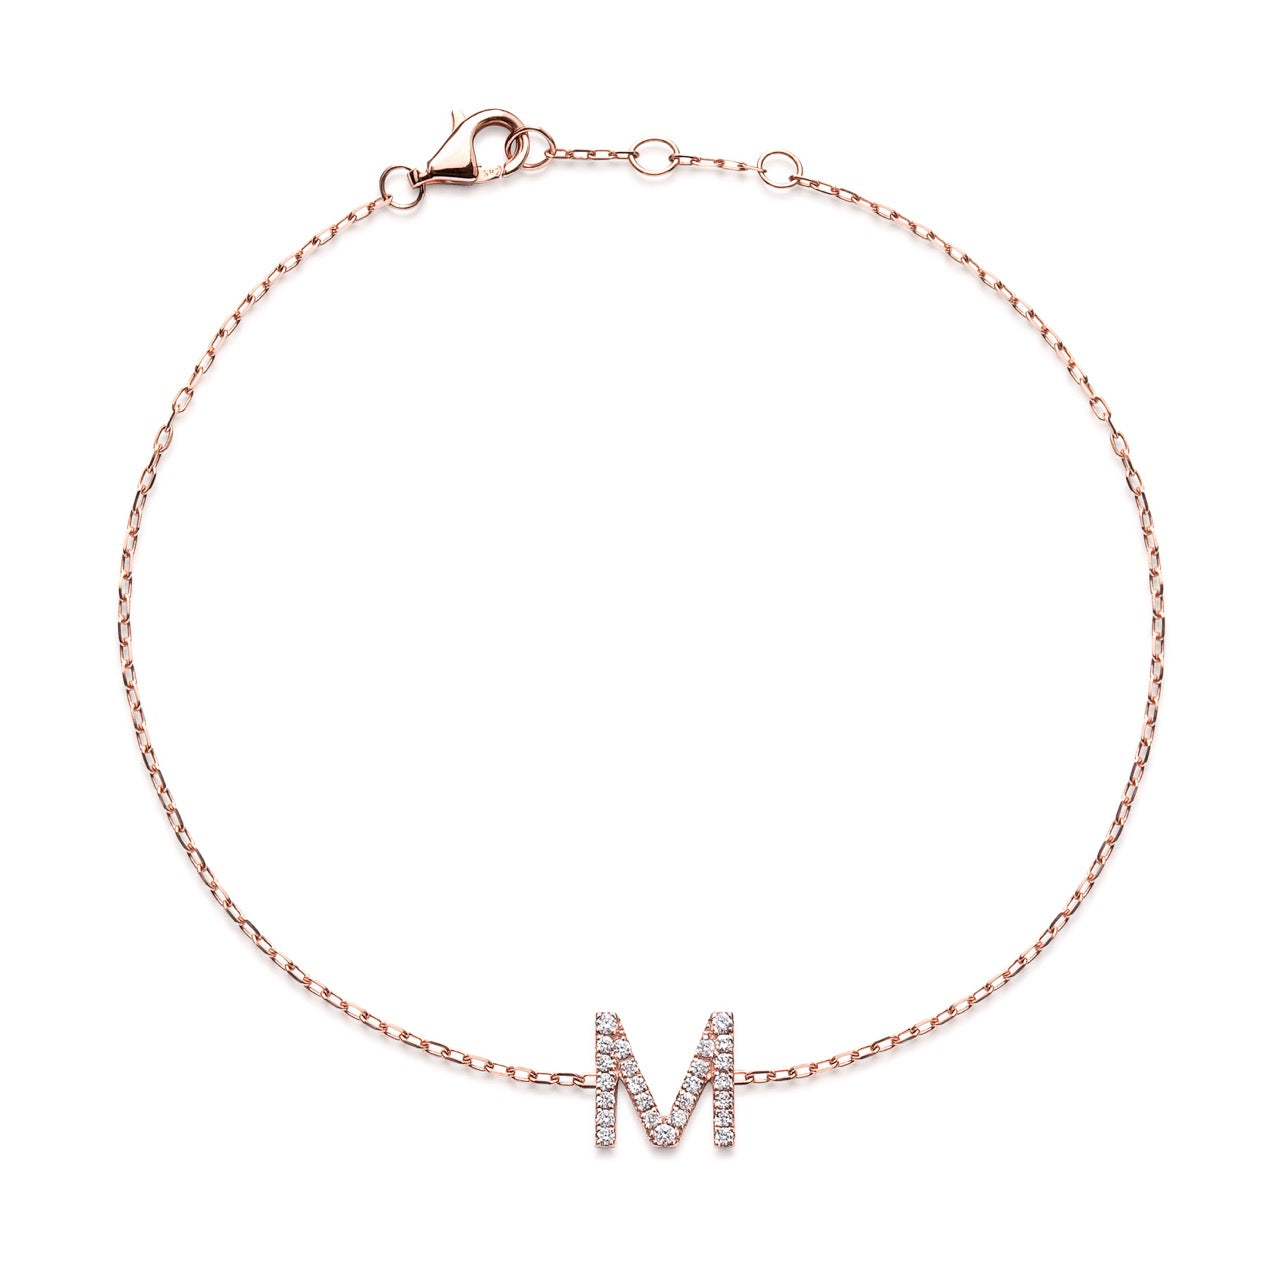 BIG DIAMOND INITIAL BRACELET